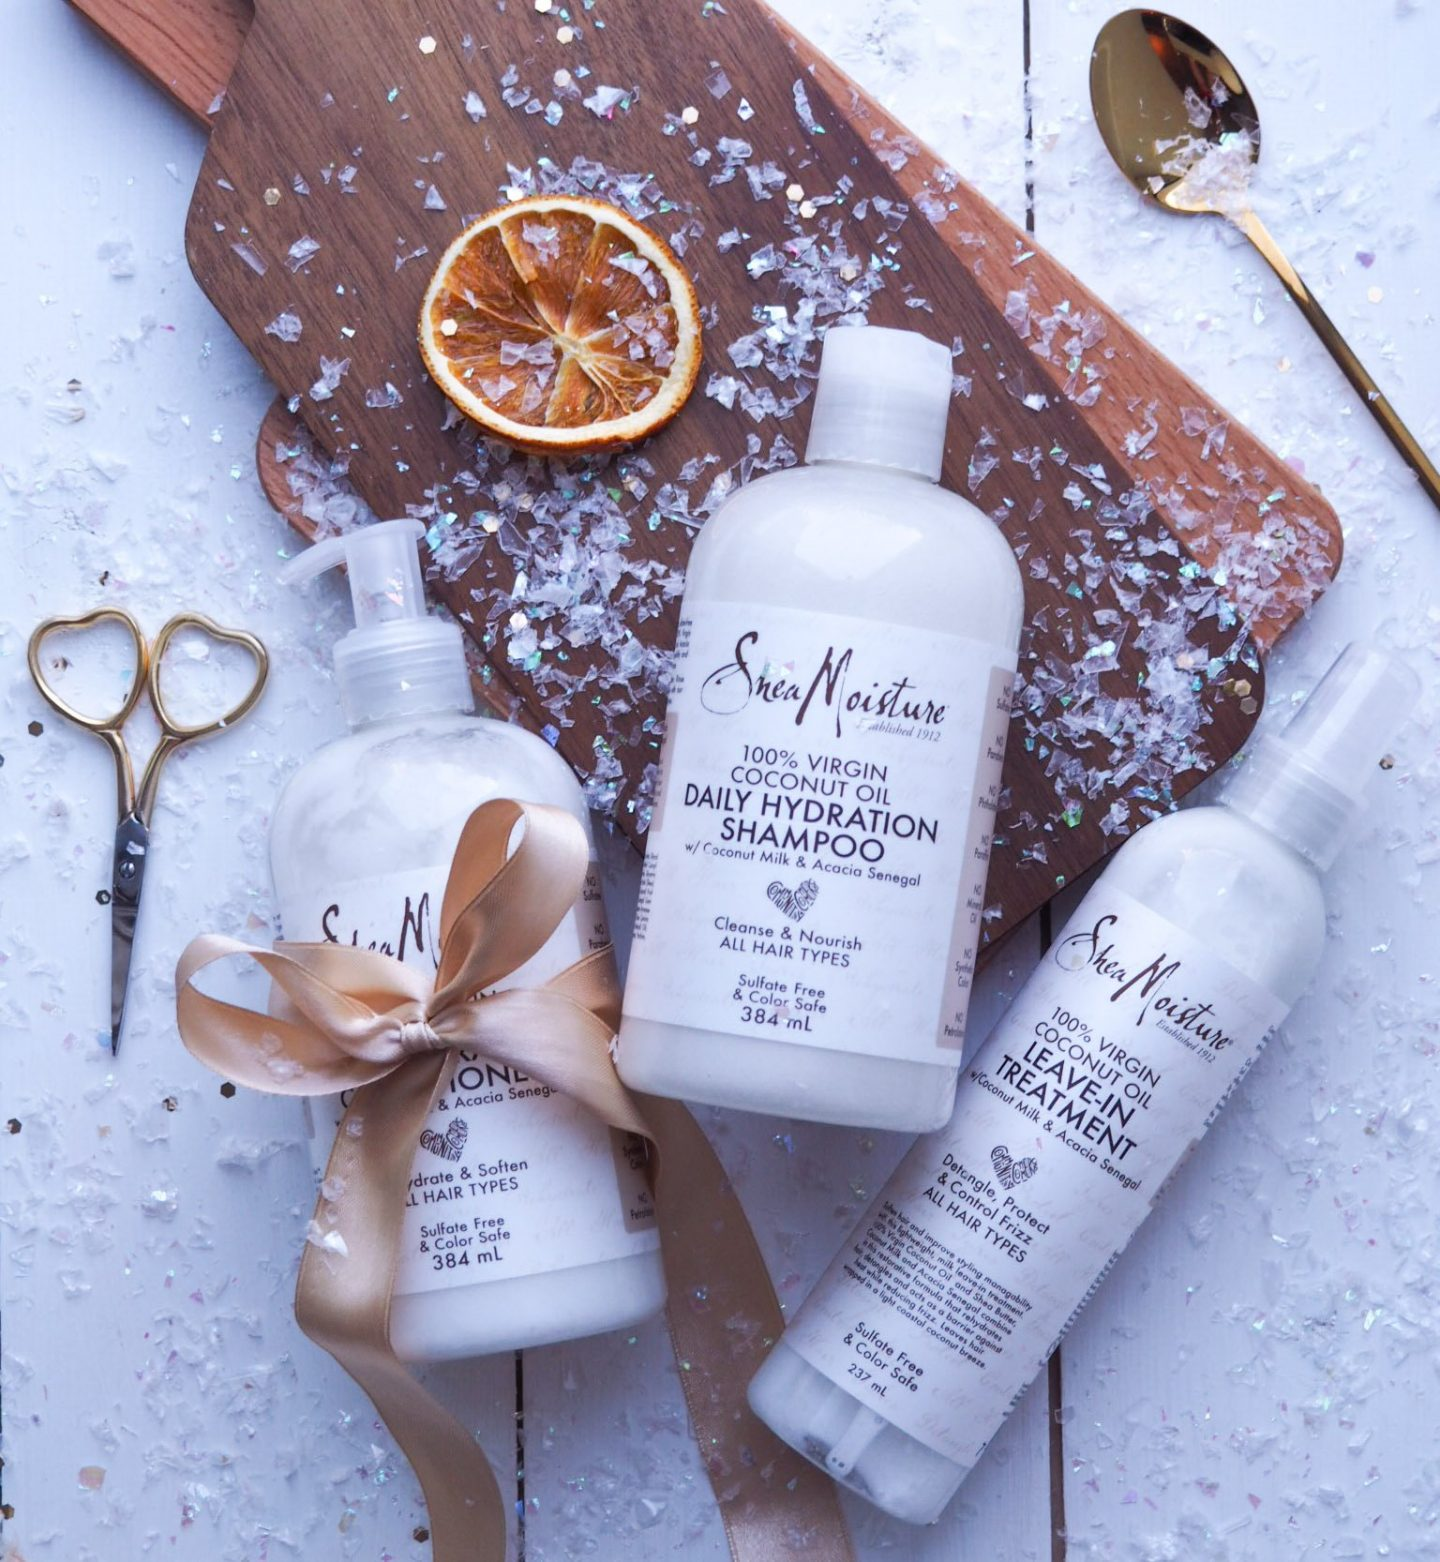 Shea Moisture Coconut Oil Hydration Hair Care Range Review